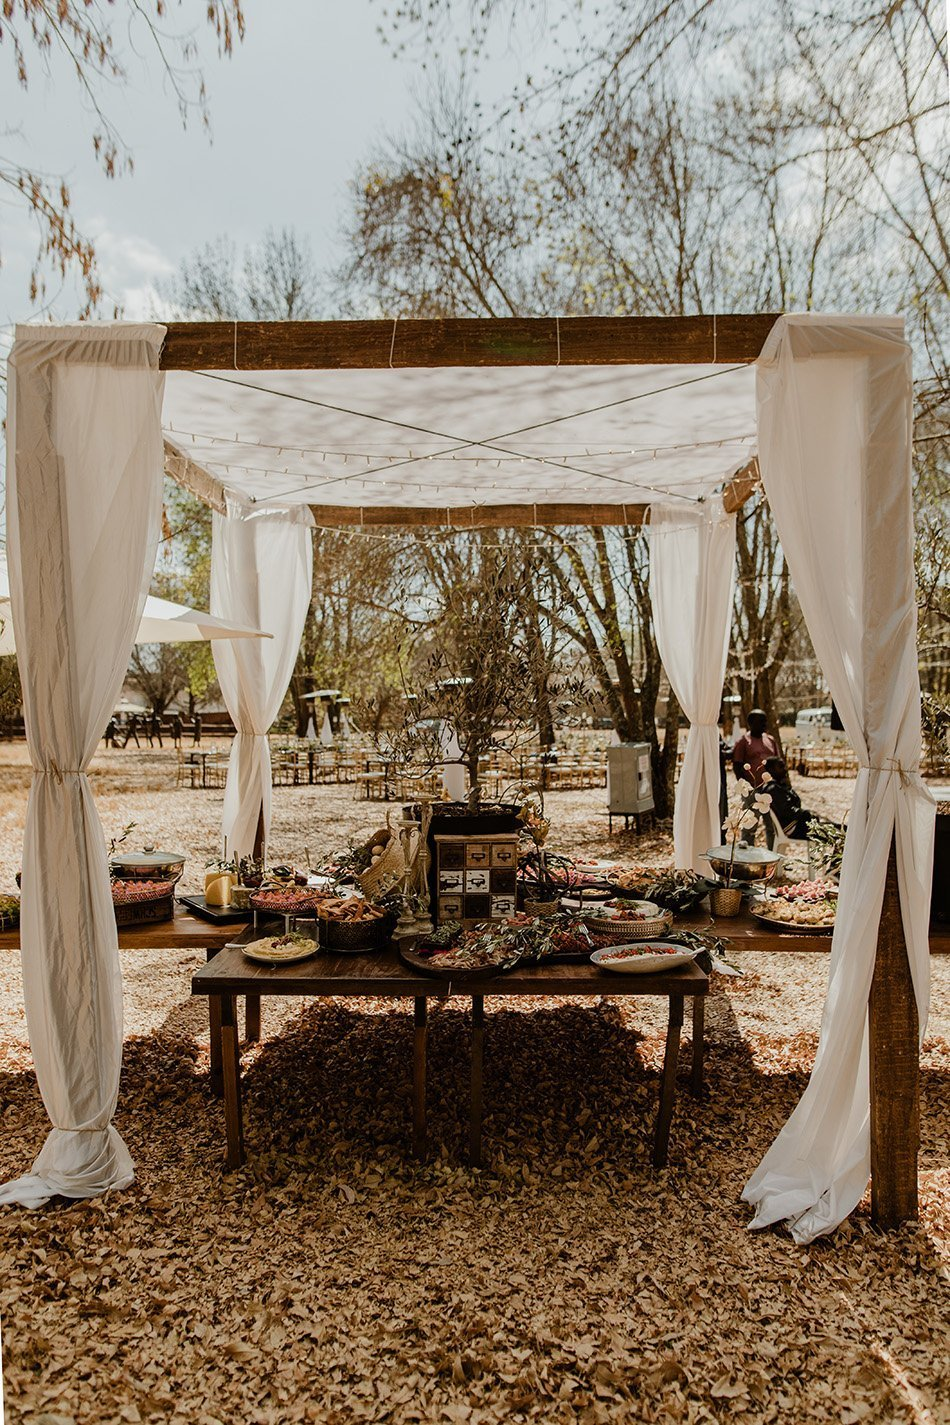 Woodlands wedding celebration - Parklands Farm - Harare, Zimbabwe - Destination Wedding Photographer - Duane Smith Photography - Charli & Nigel - Married00266